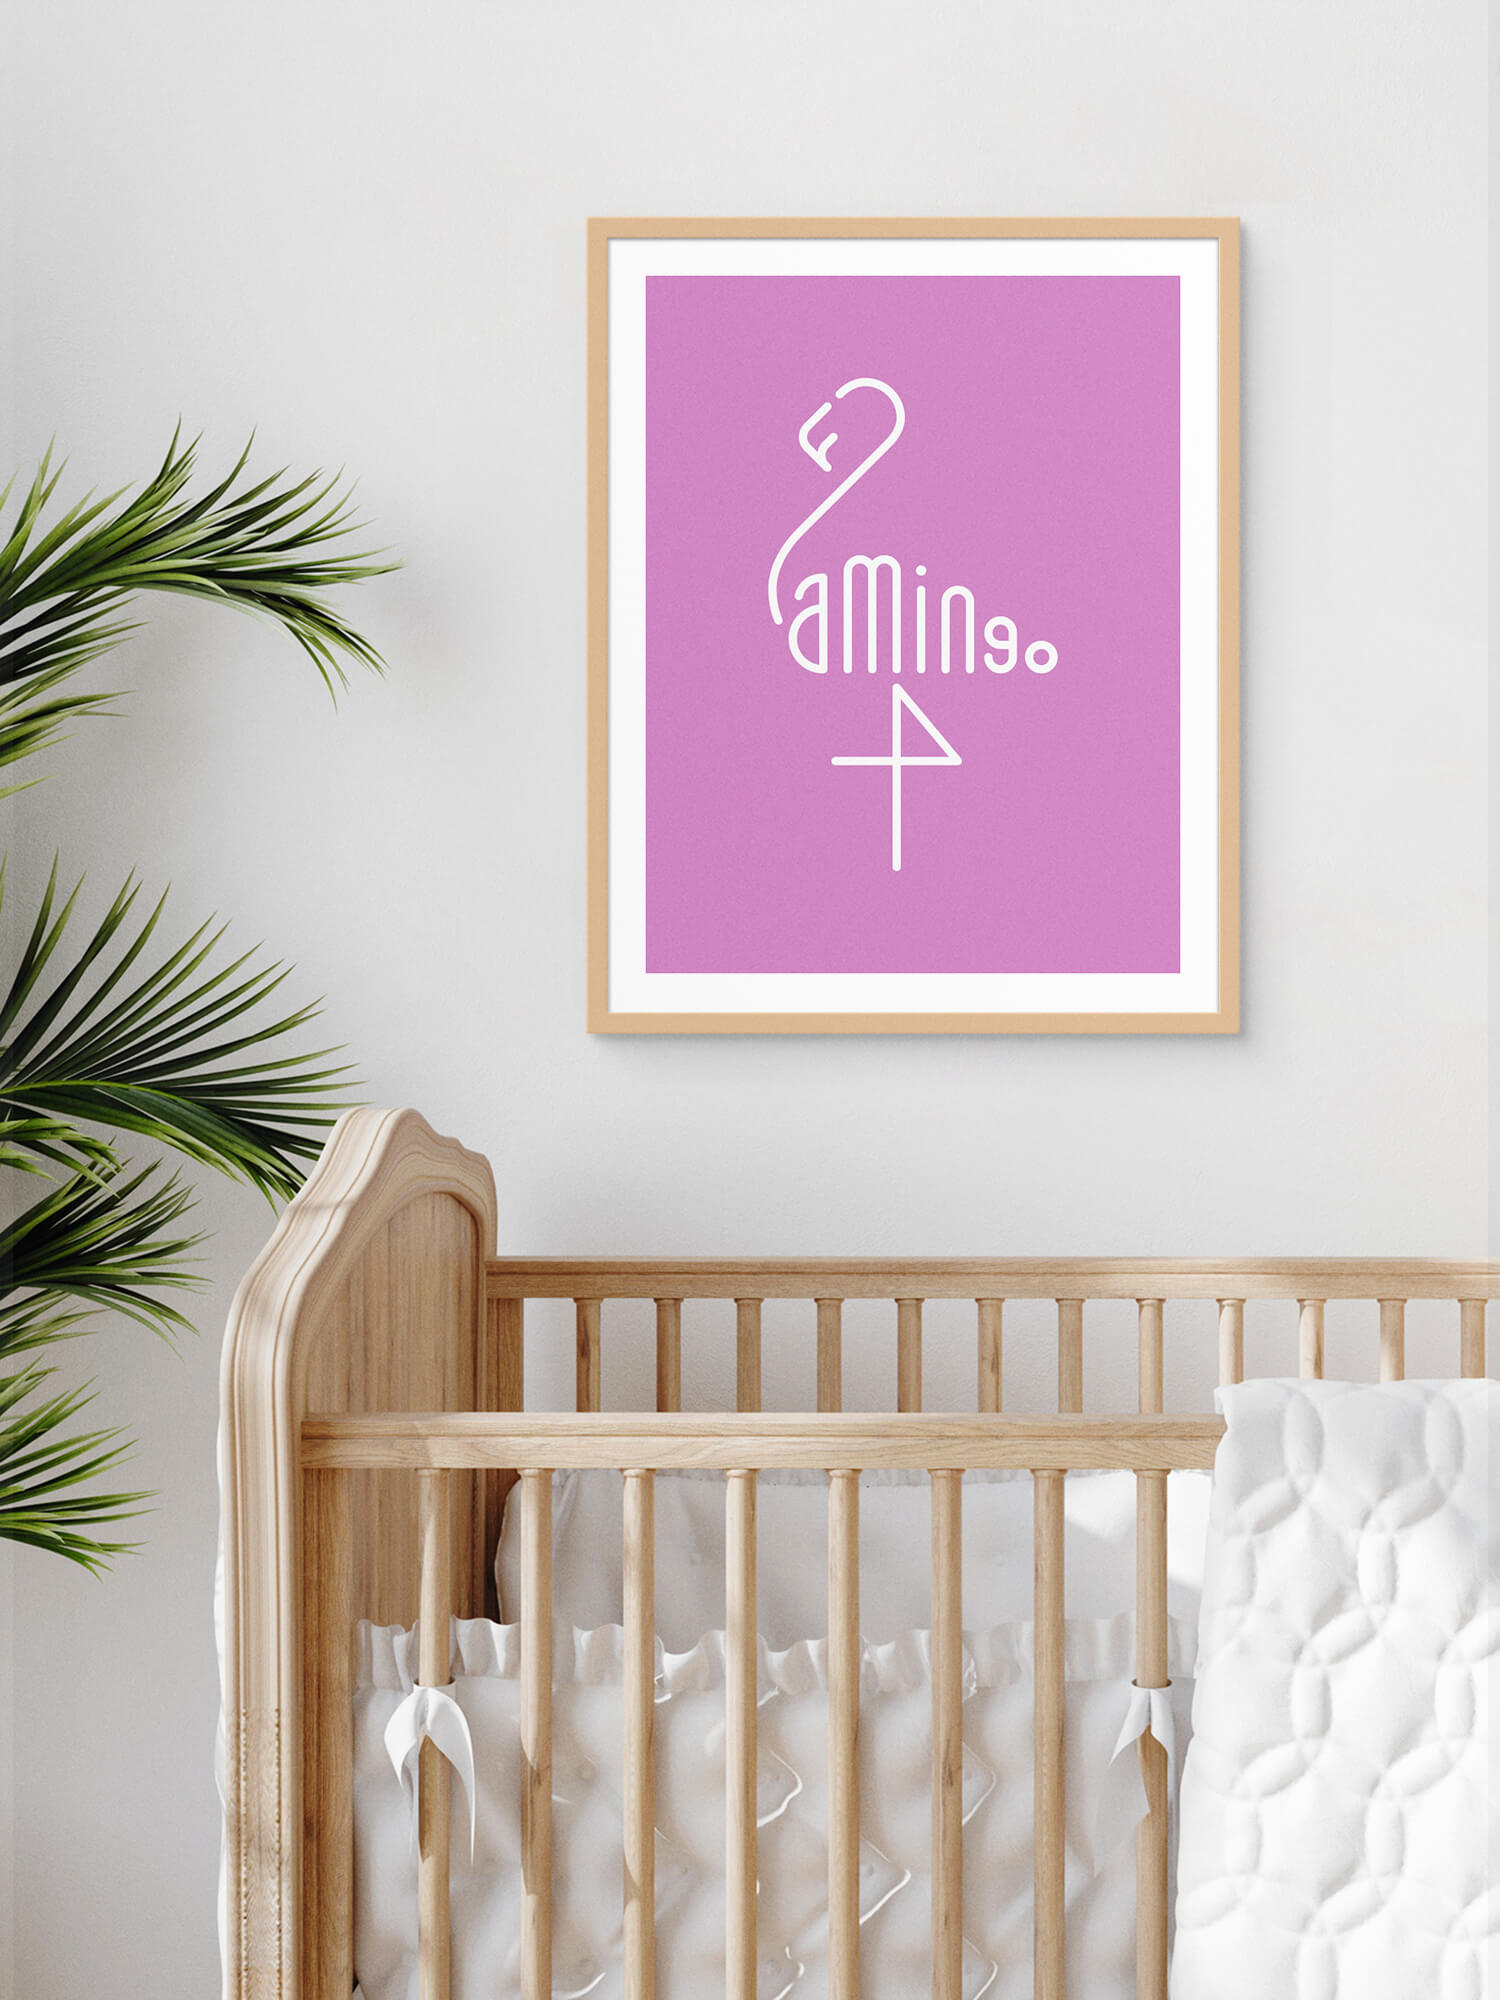 Framed Word Animals print displaying the illustration of a flamingo on the wall of a babies room